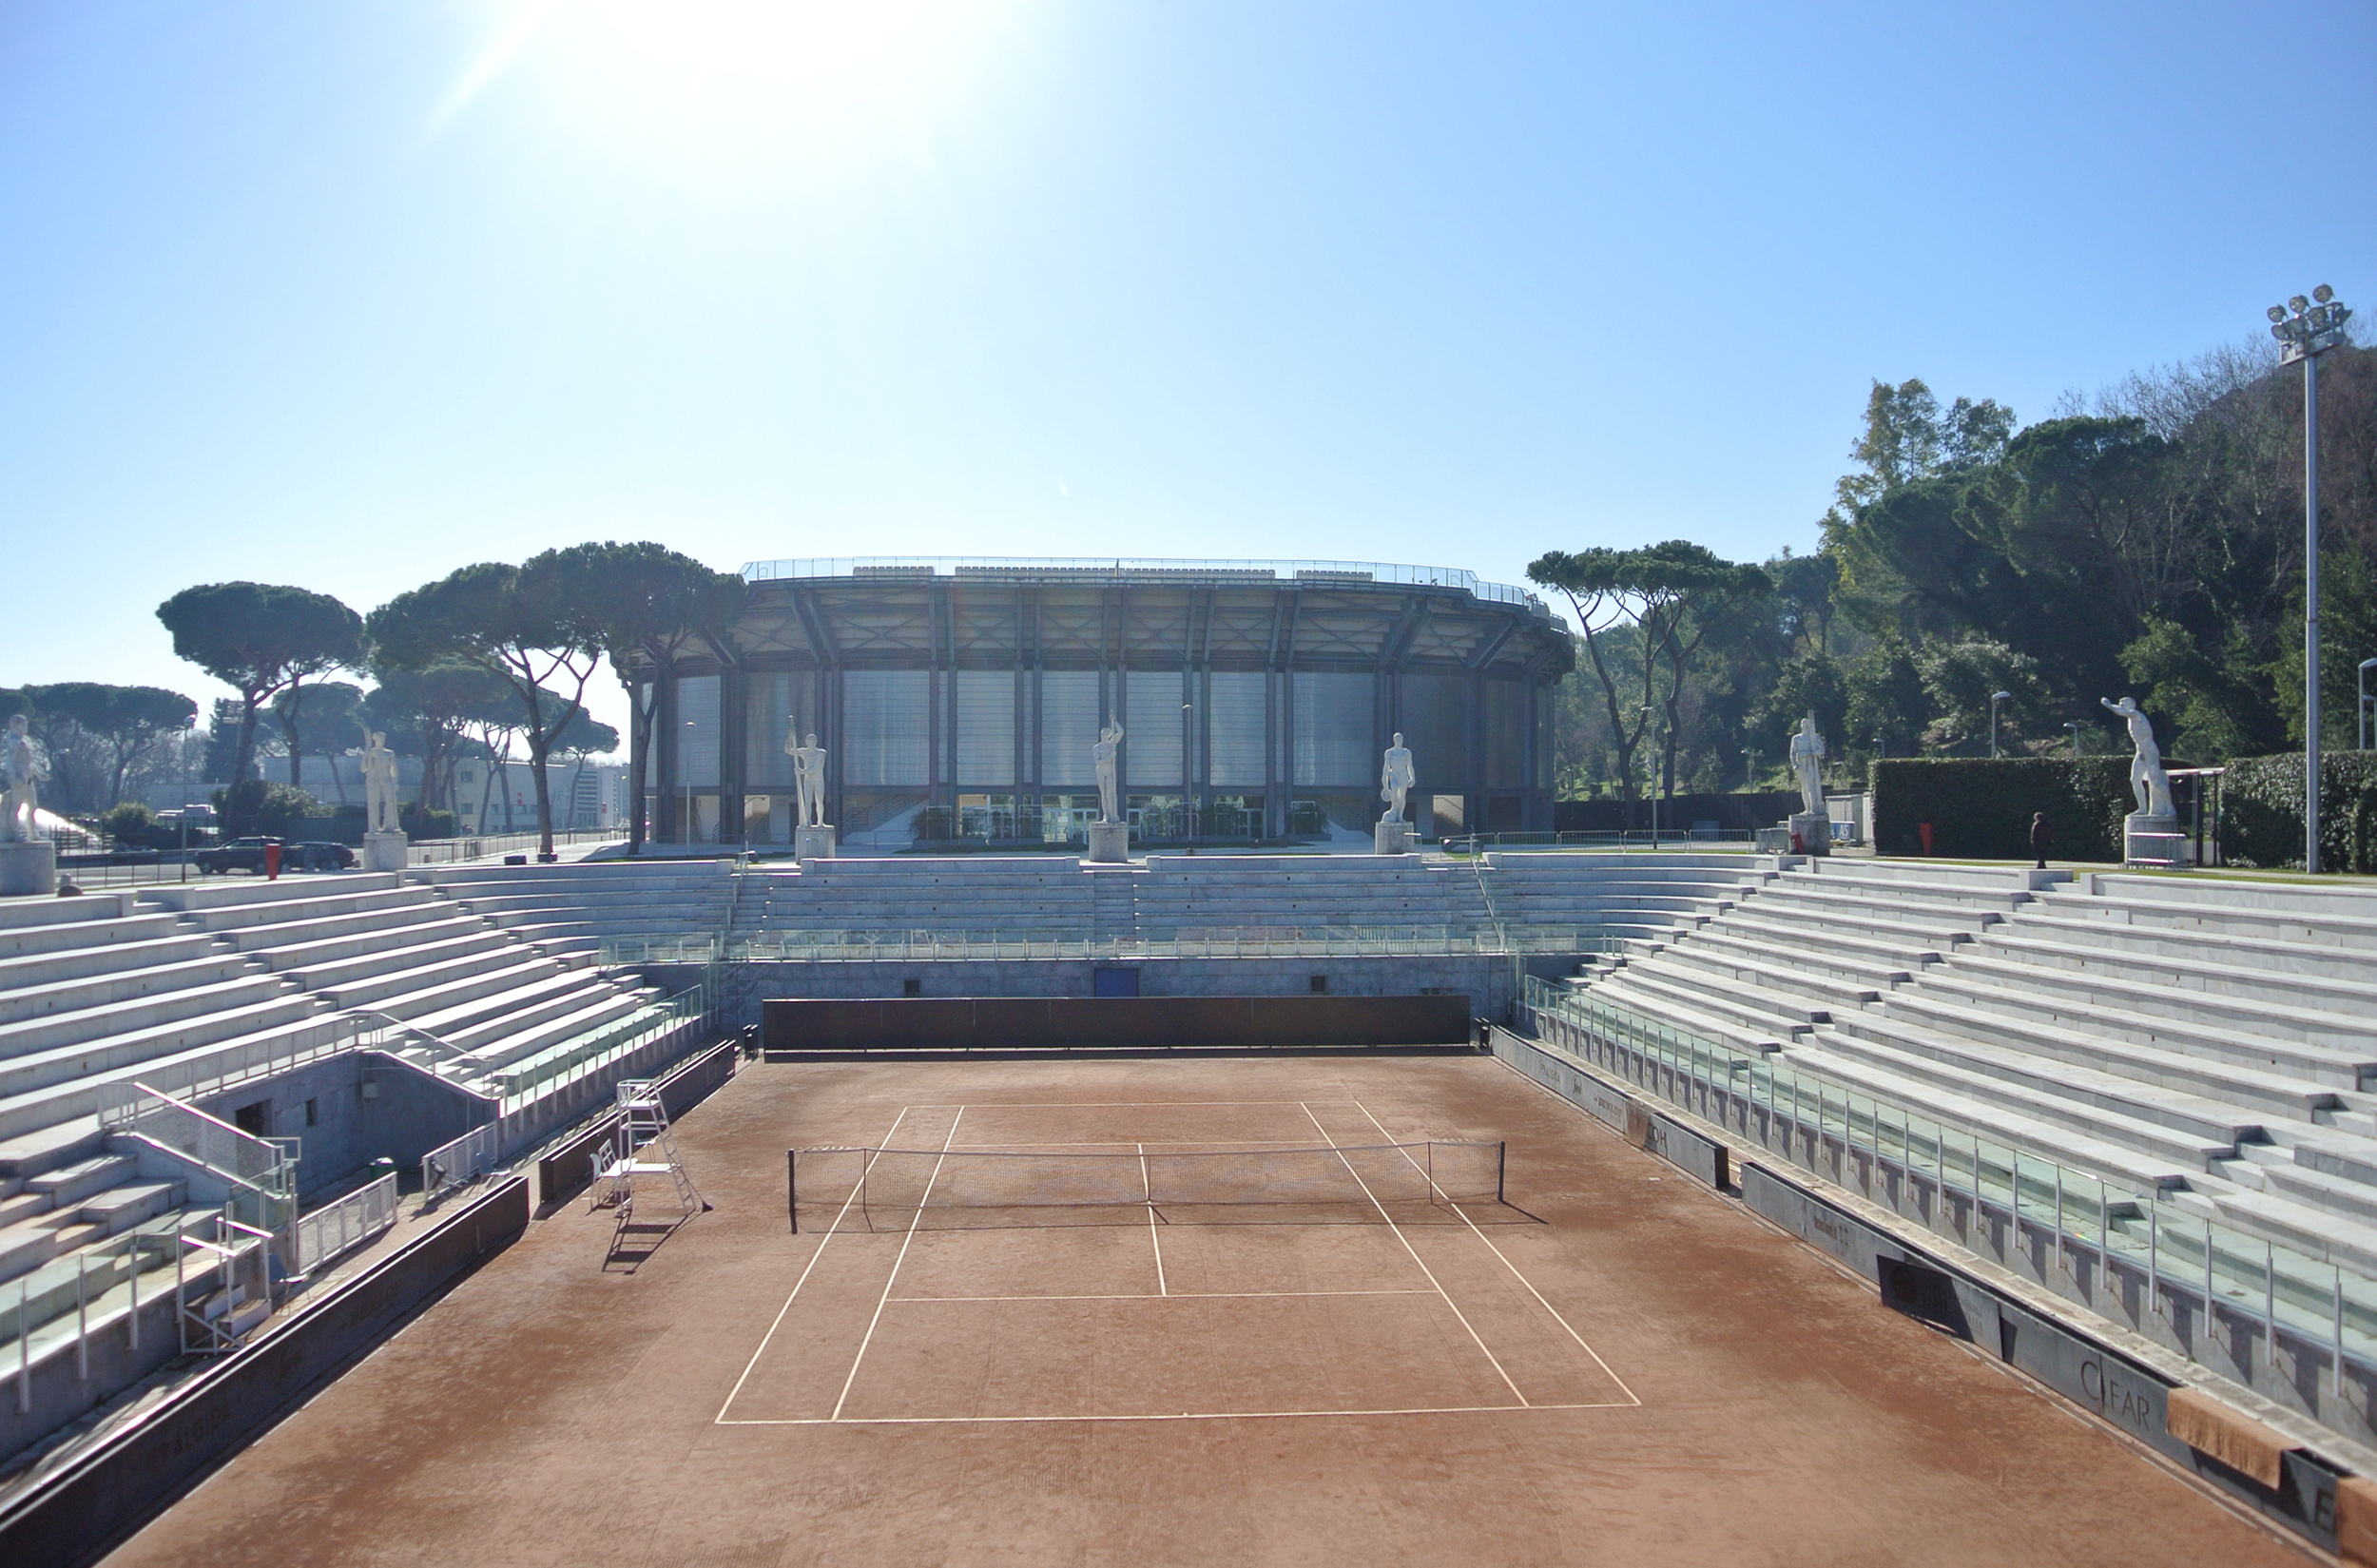 Tennis Club / Forum of Mussolini Olympic Stadium